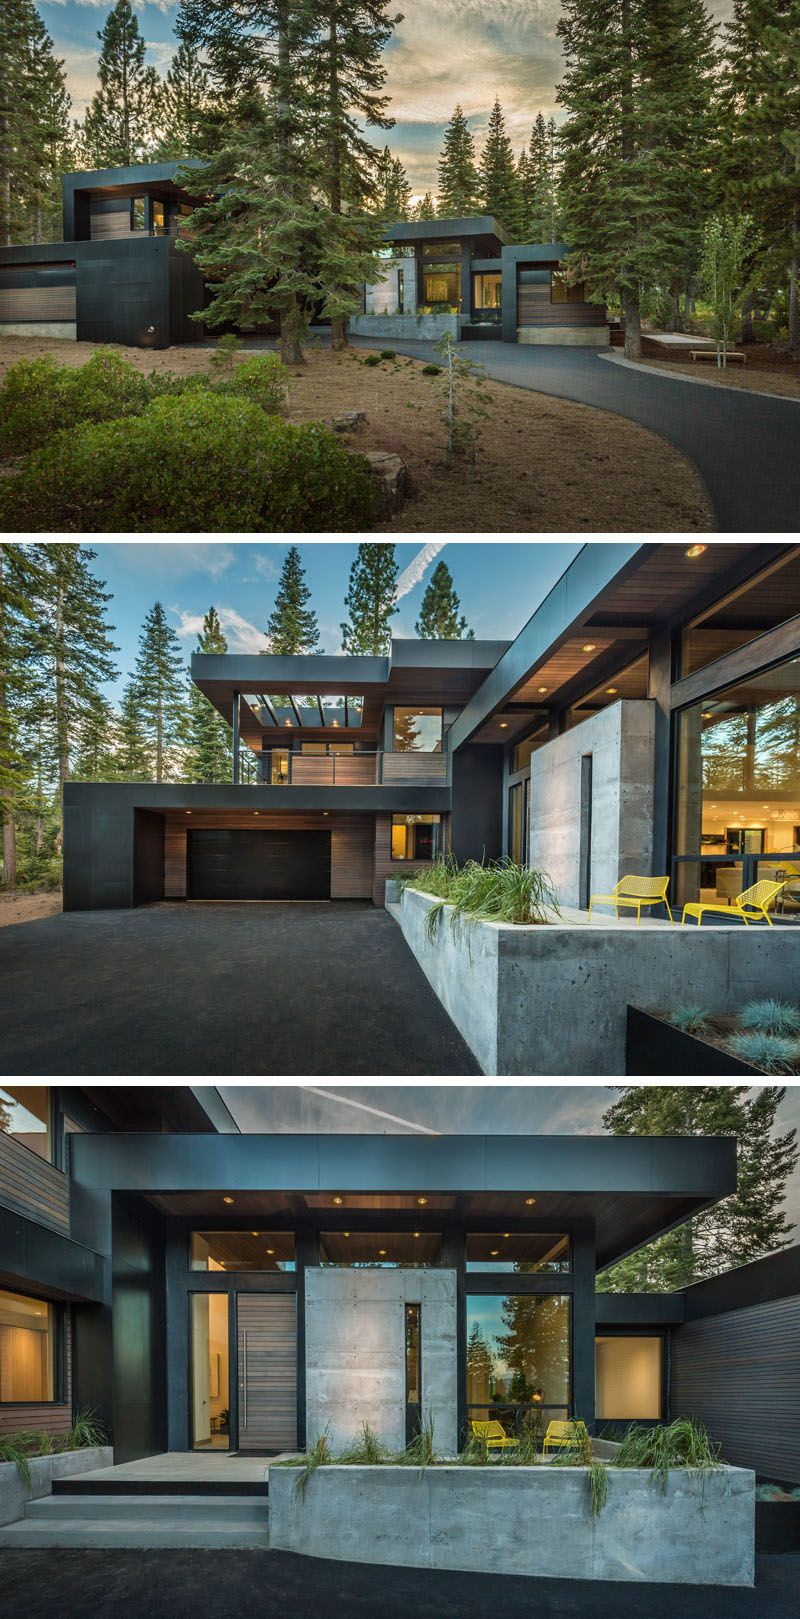 modern houses in the forest this home tucked into is surrounded by trees on all sides creating  beautiful scene no matter season also purdue pinterest house design rh za